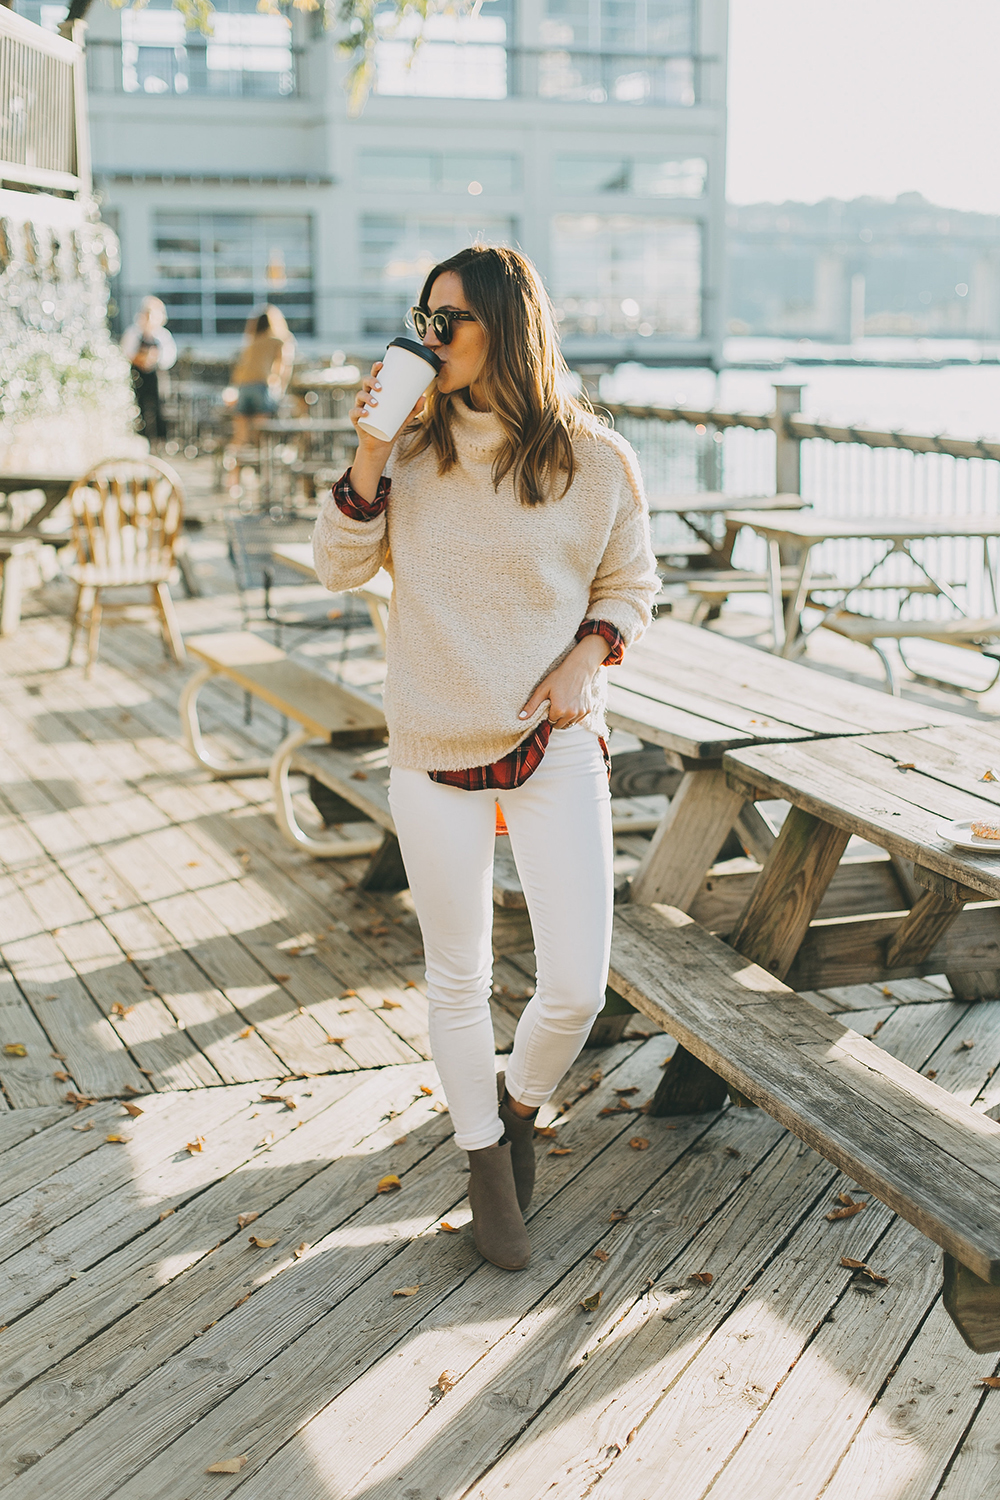 livvyland-blog-olivia-watson-austin-texas-fashion-style-blogger-knit-sweater-plaid-button-down-layer-white-jeans-mozarts-coffeehouse-6